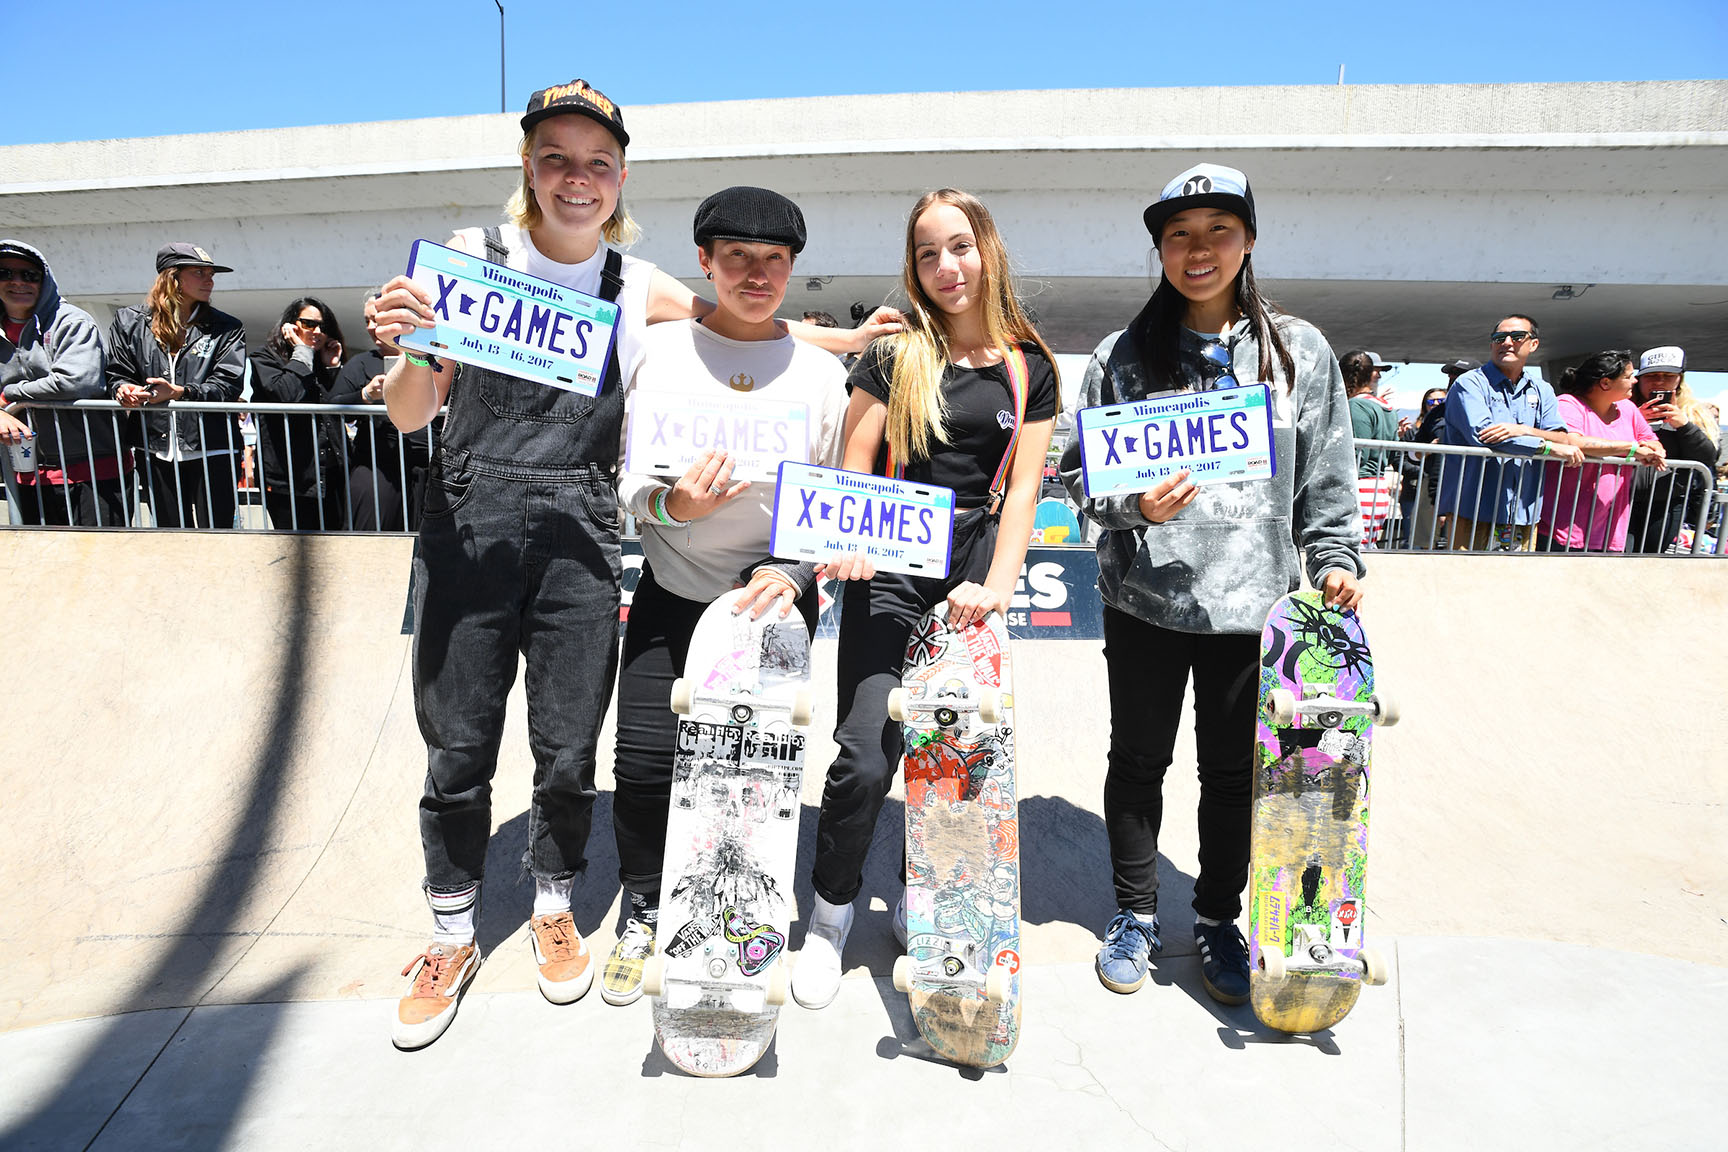 Women's Skateboard Park Qualifiers